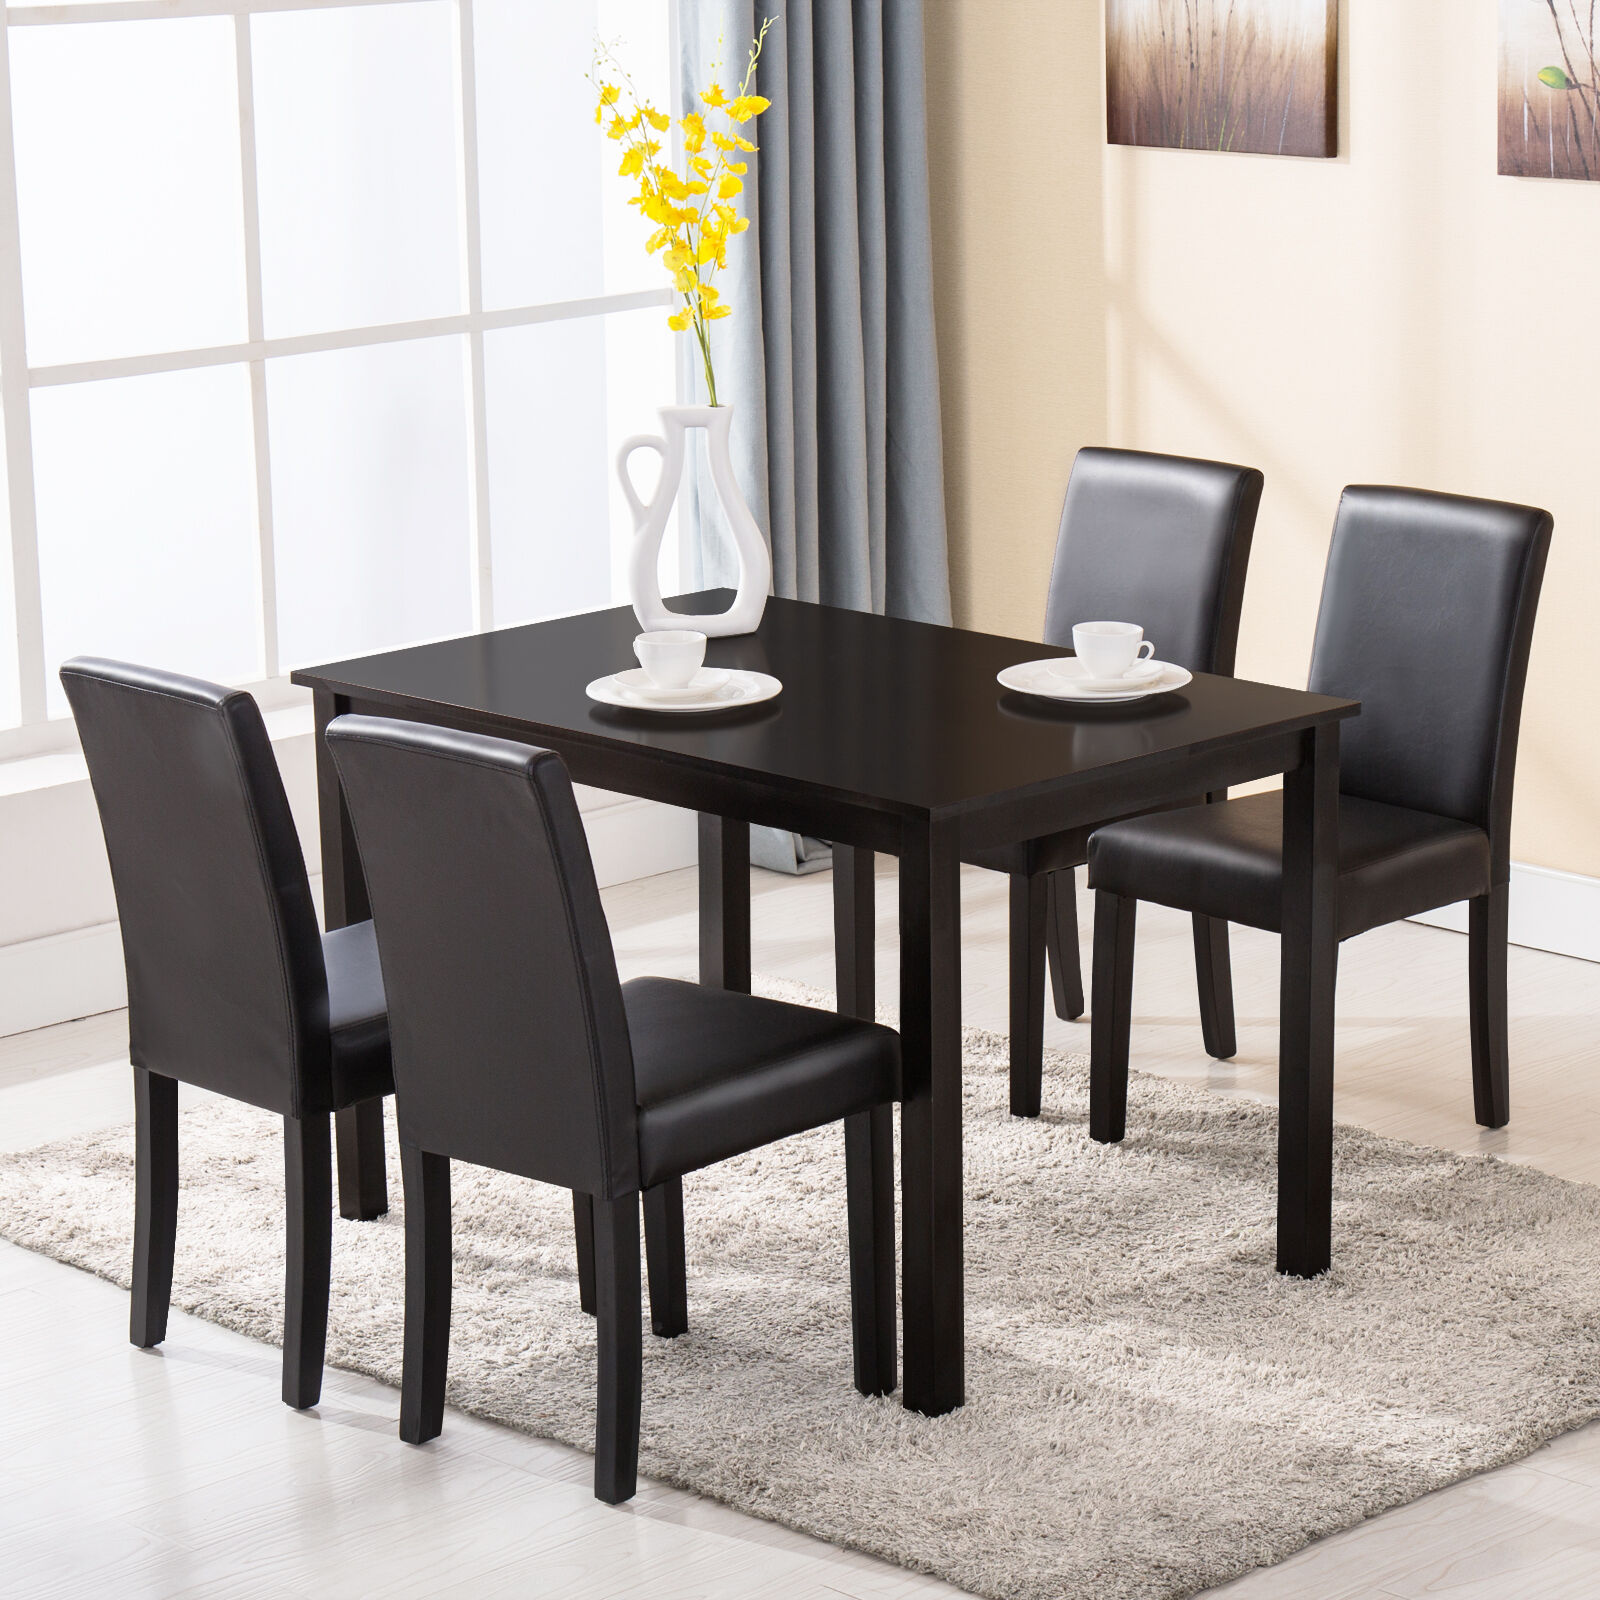 Apartment Kitchen Table And Chairs: 5 Piece Dining Table Set 4 Chairs Wood Kitchen Dinette